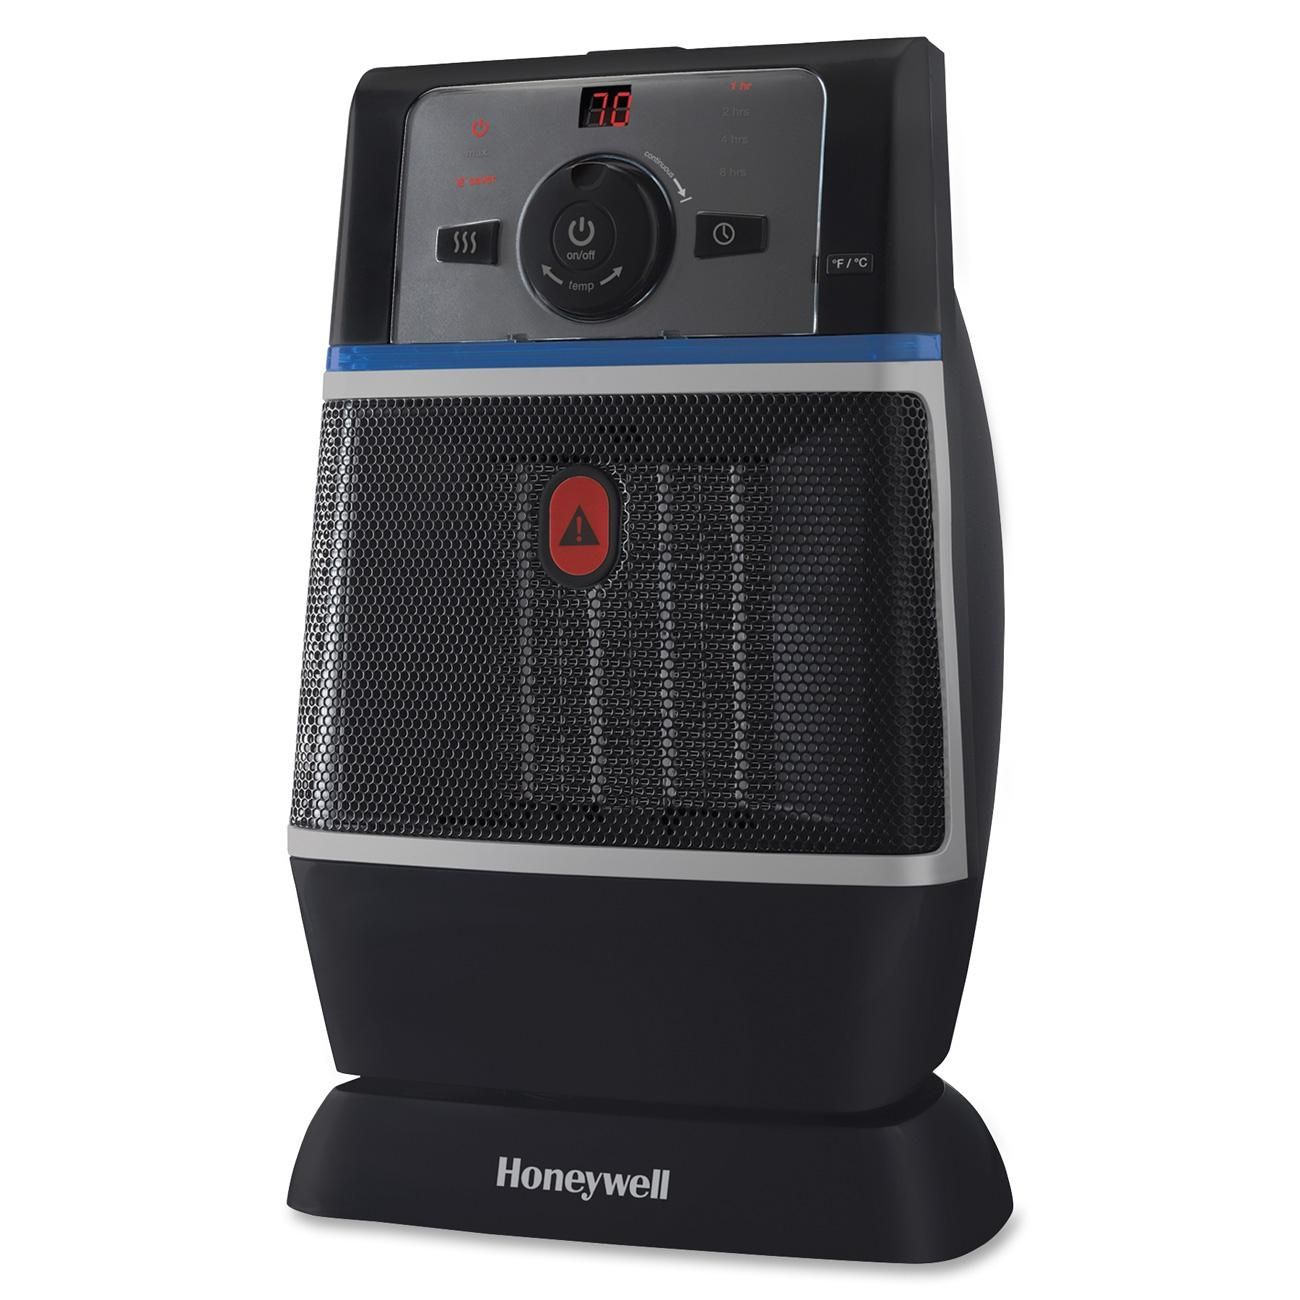 Honeywell HZ370BP Space Heater Item HWLHZ370BP Easytouch